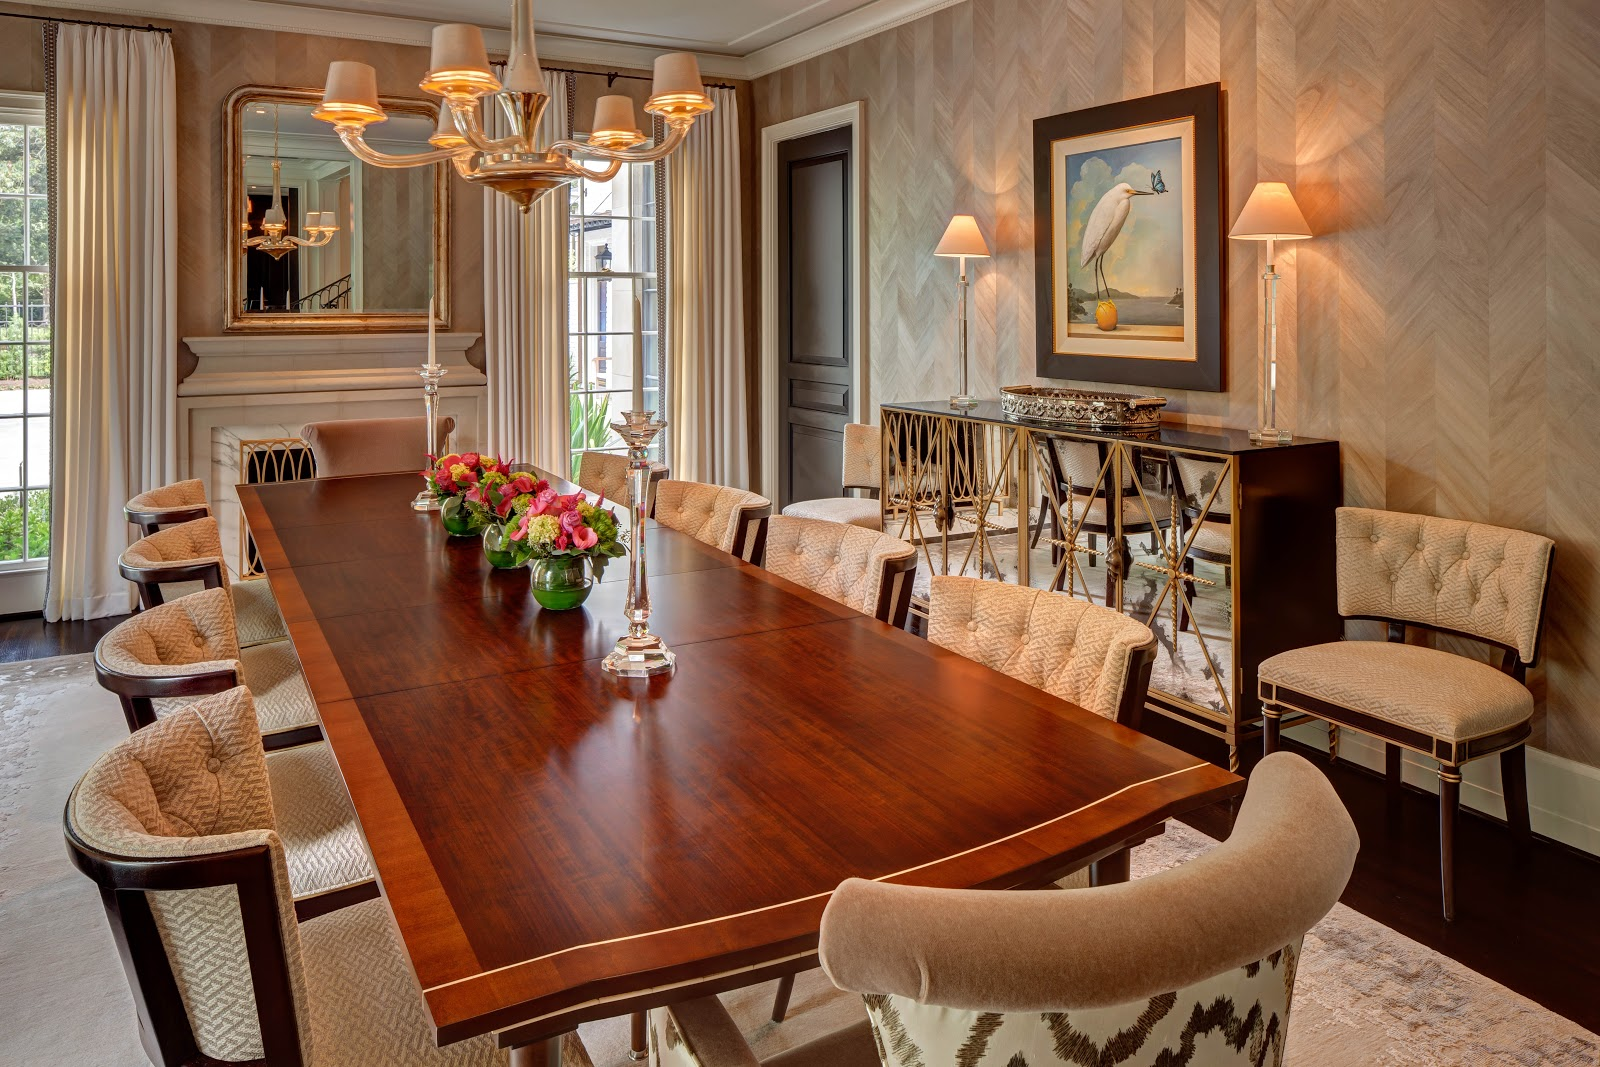 Formal dining room with marble fireplace surround - Ohorona24.in.ua Interior